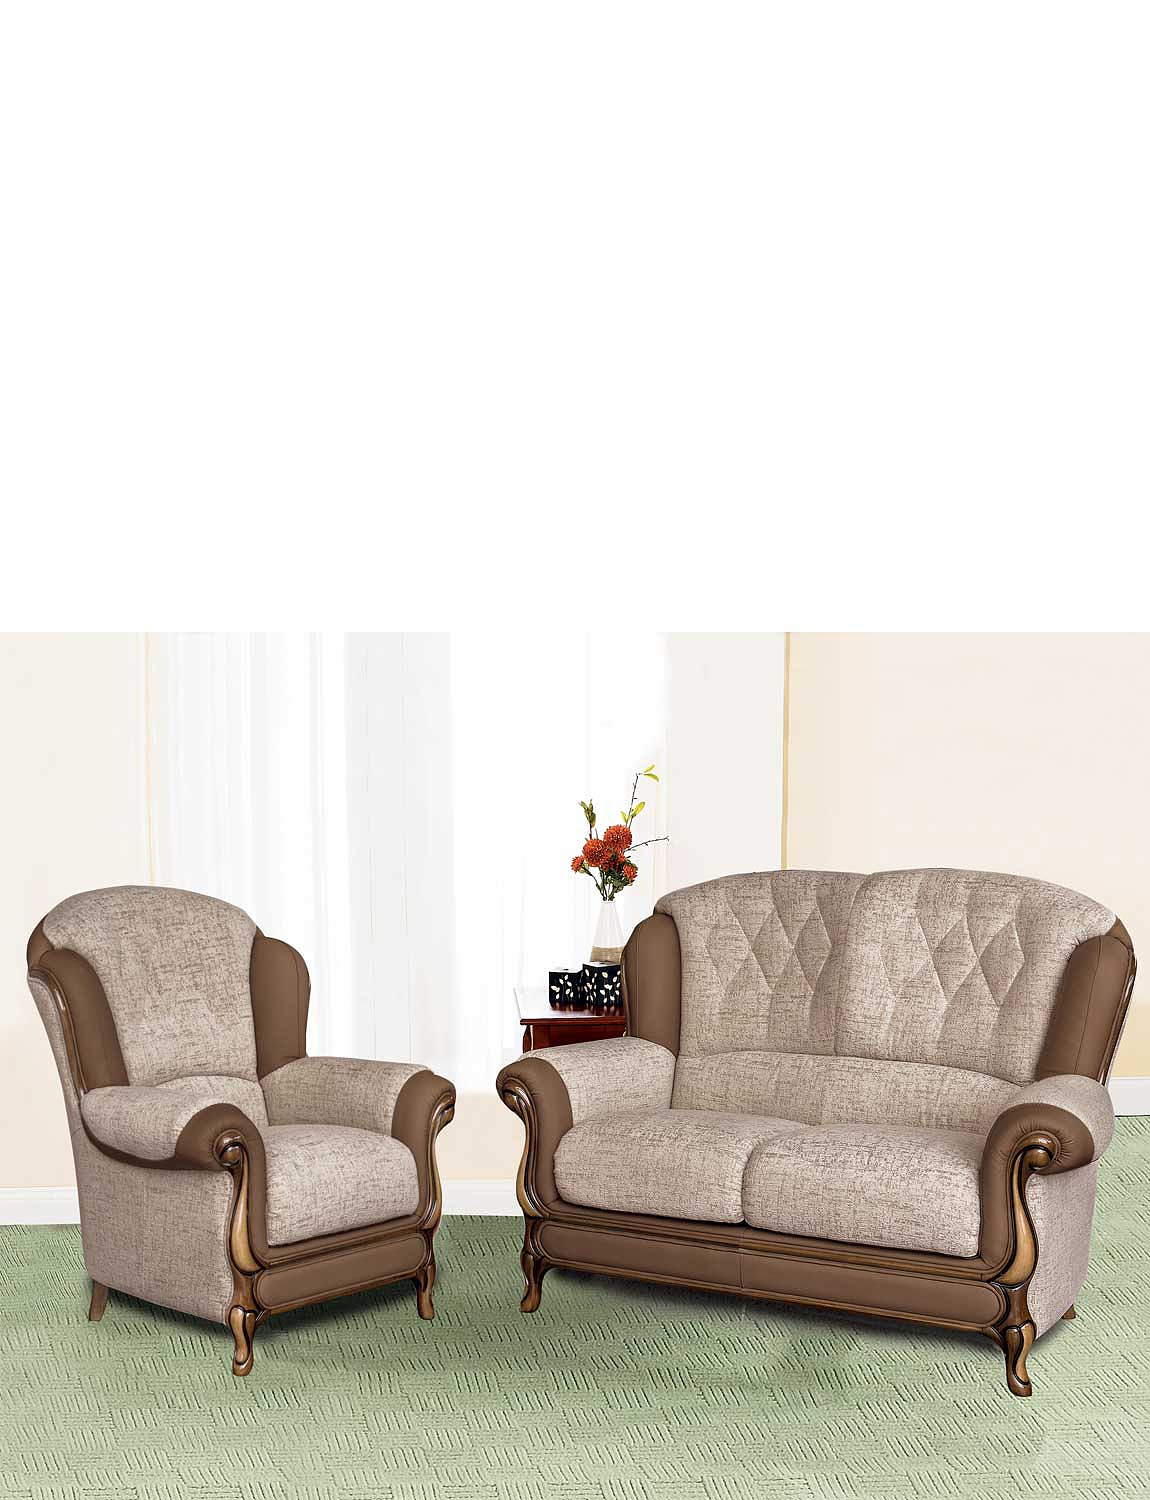 Queen Anne Suite - Two Seater & One Chair